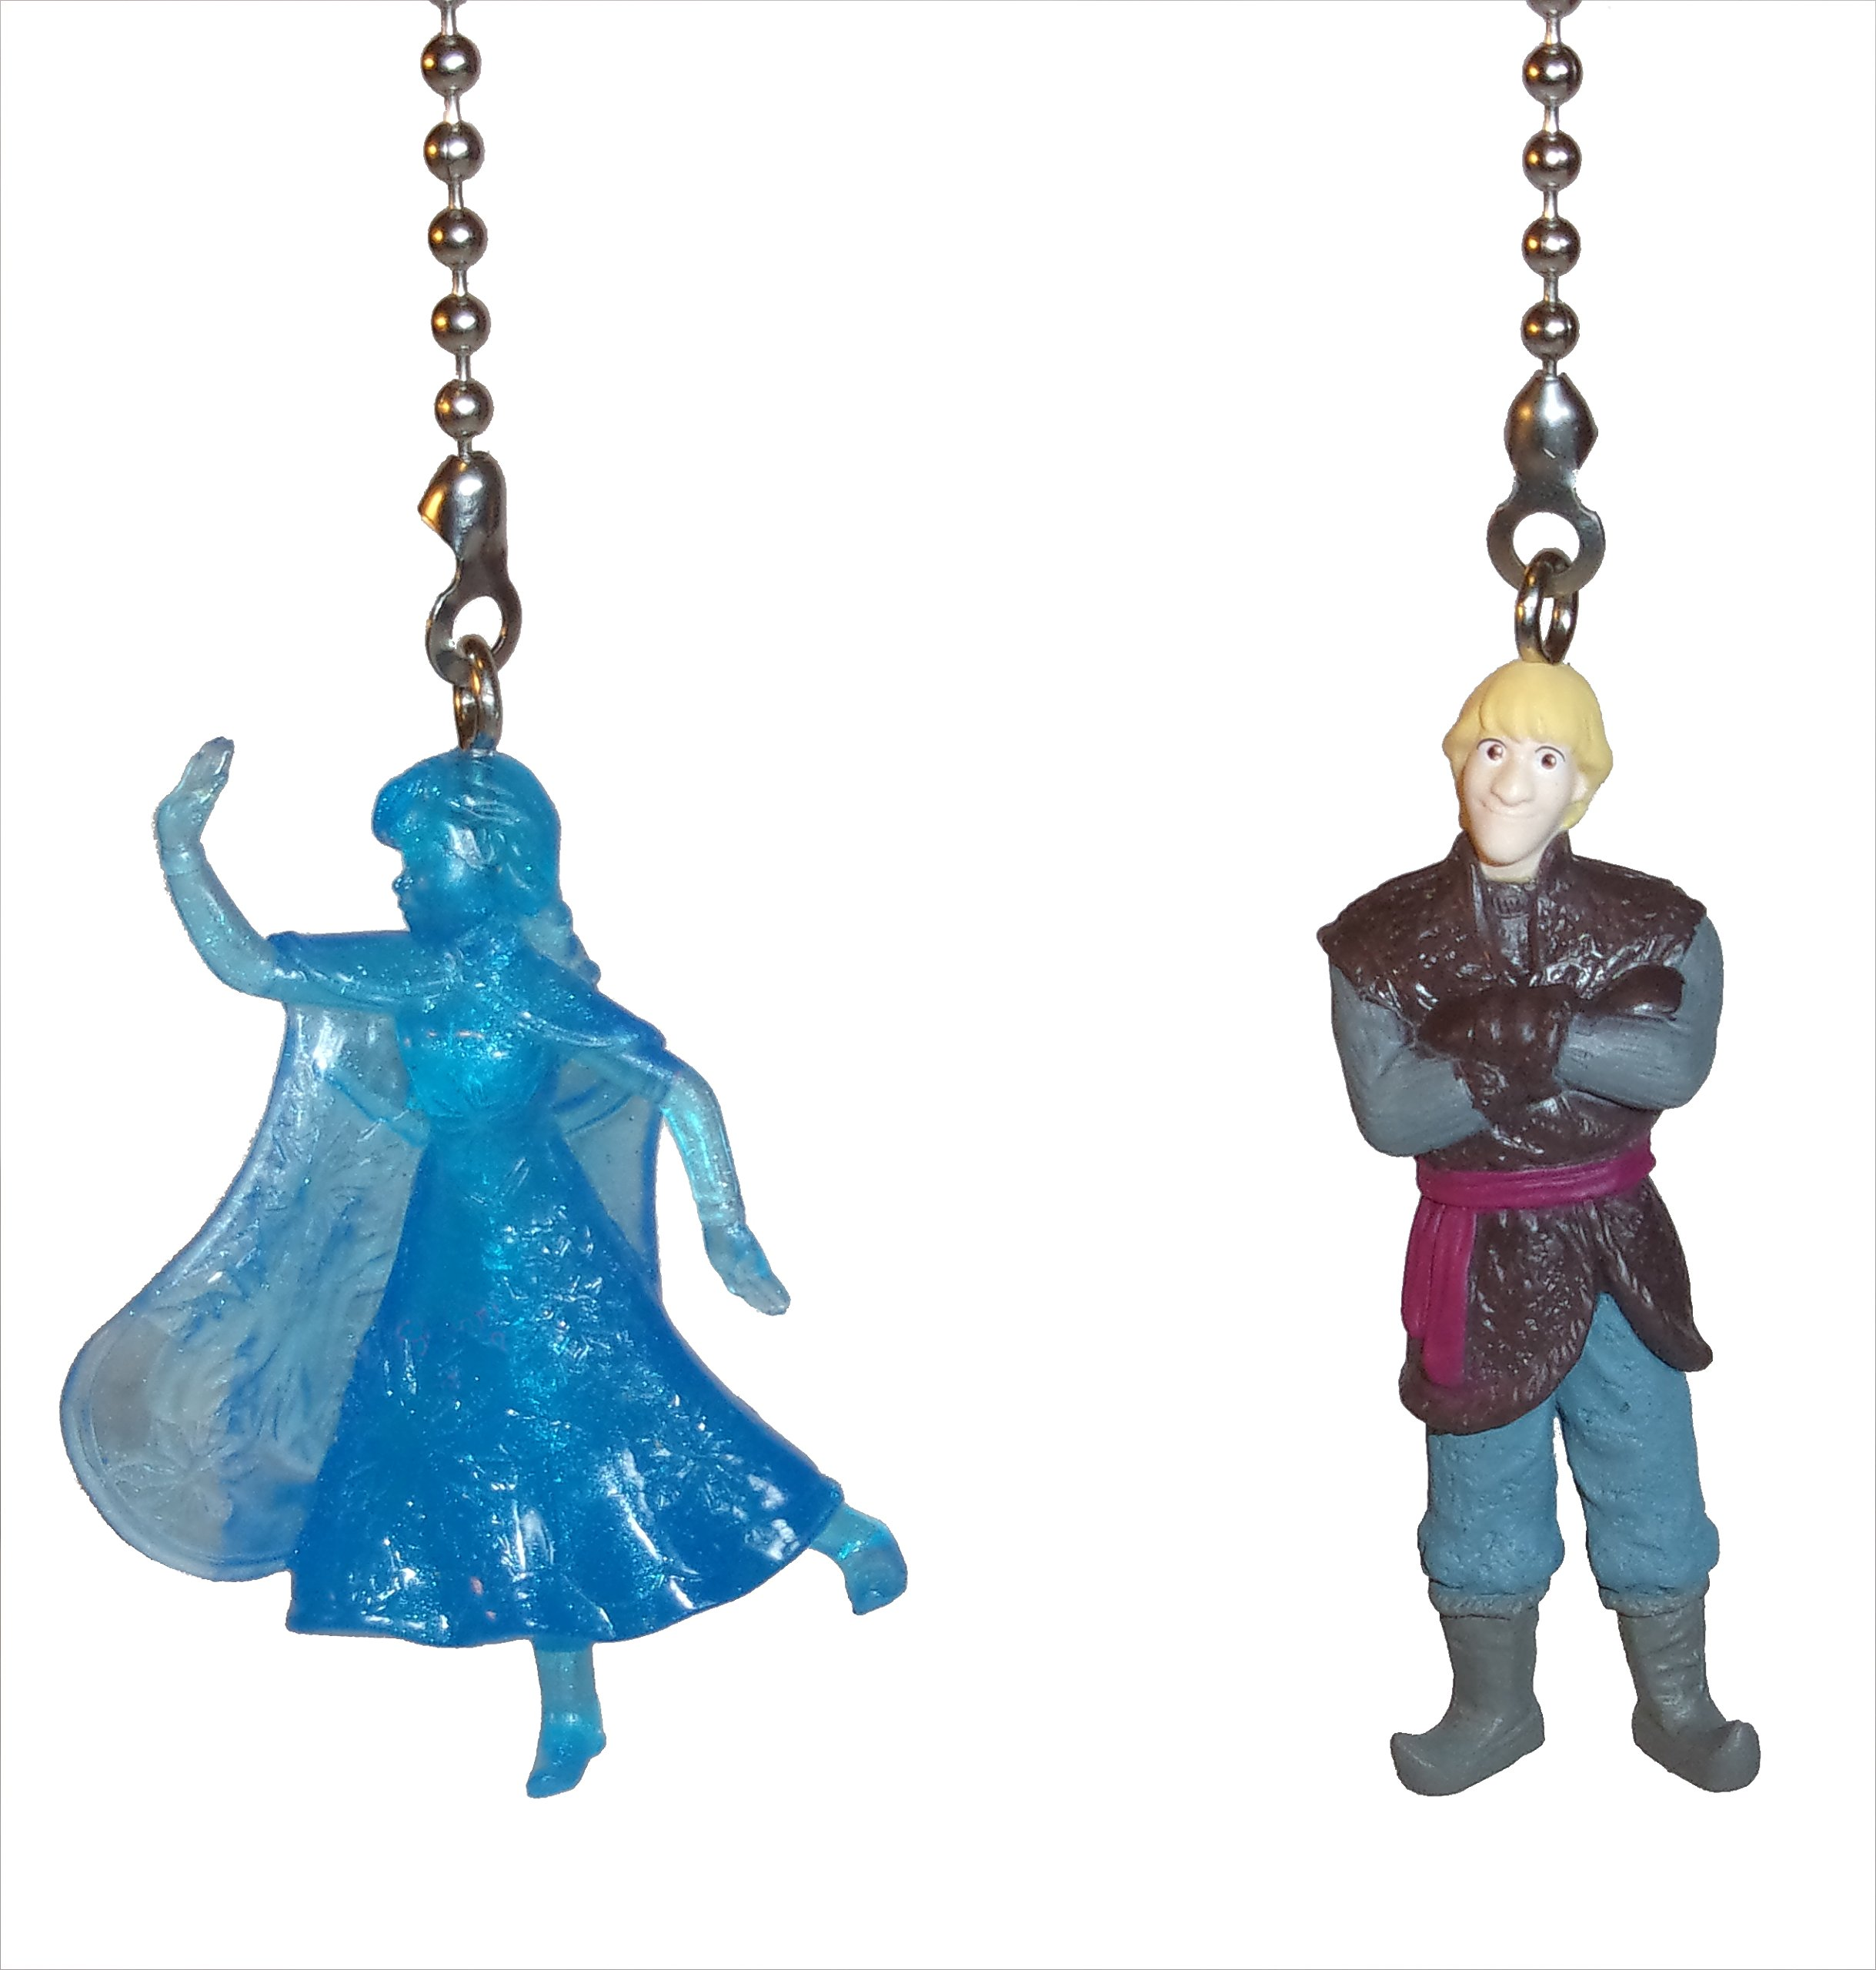 Frozen Elsa Anna Sven Olaf Kristoff Ceiling Fan Pulls by Wooden Androyd Studio (Anna Kristoff 3)